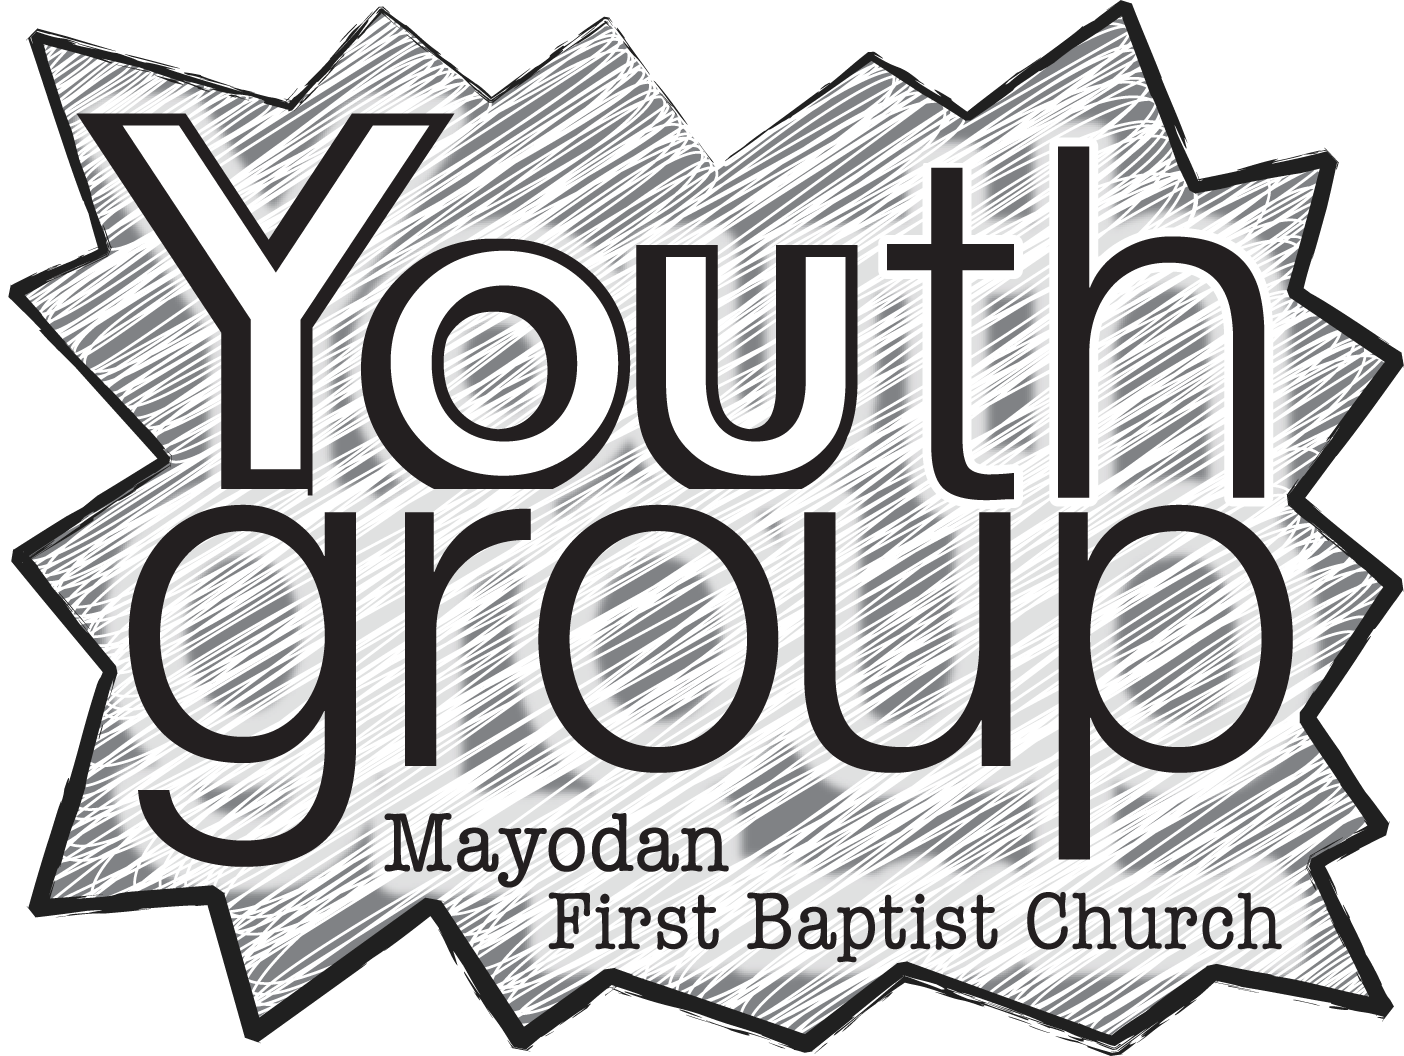 YOUthGroup Mayodan First Baptist Church